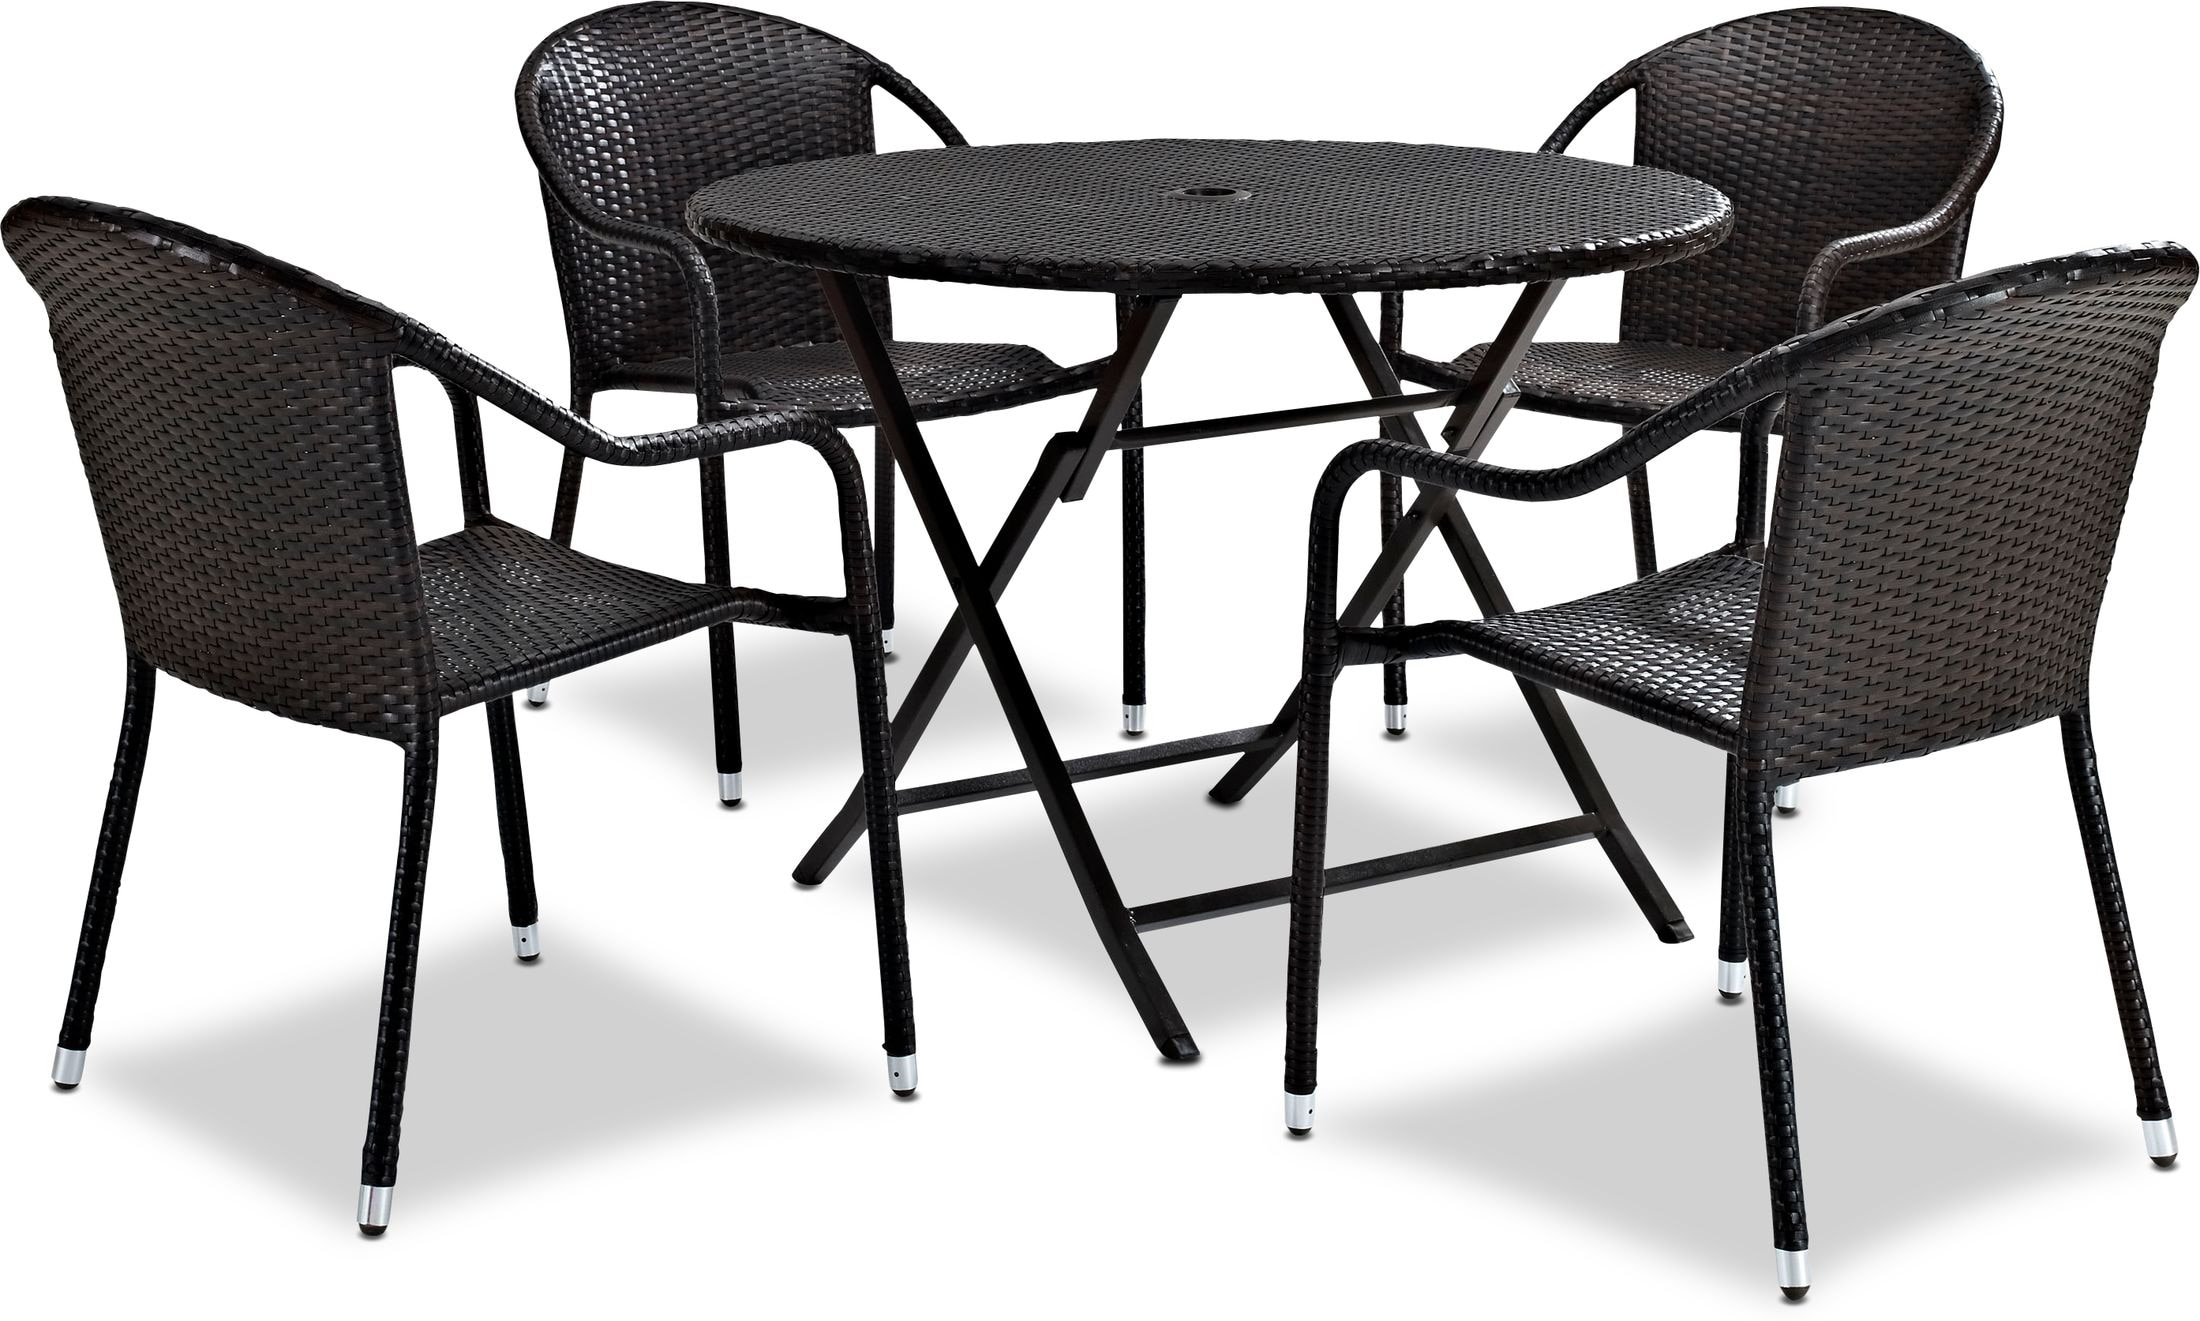 Outdoor Furniture - Aldo Outdoor Café Table and 4 Arm Chairs